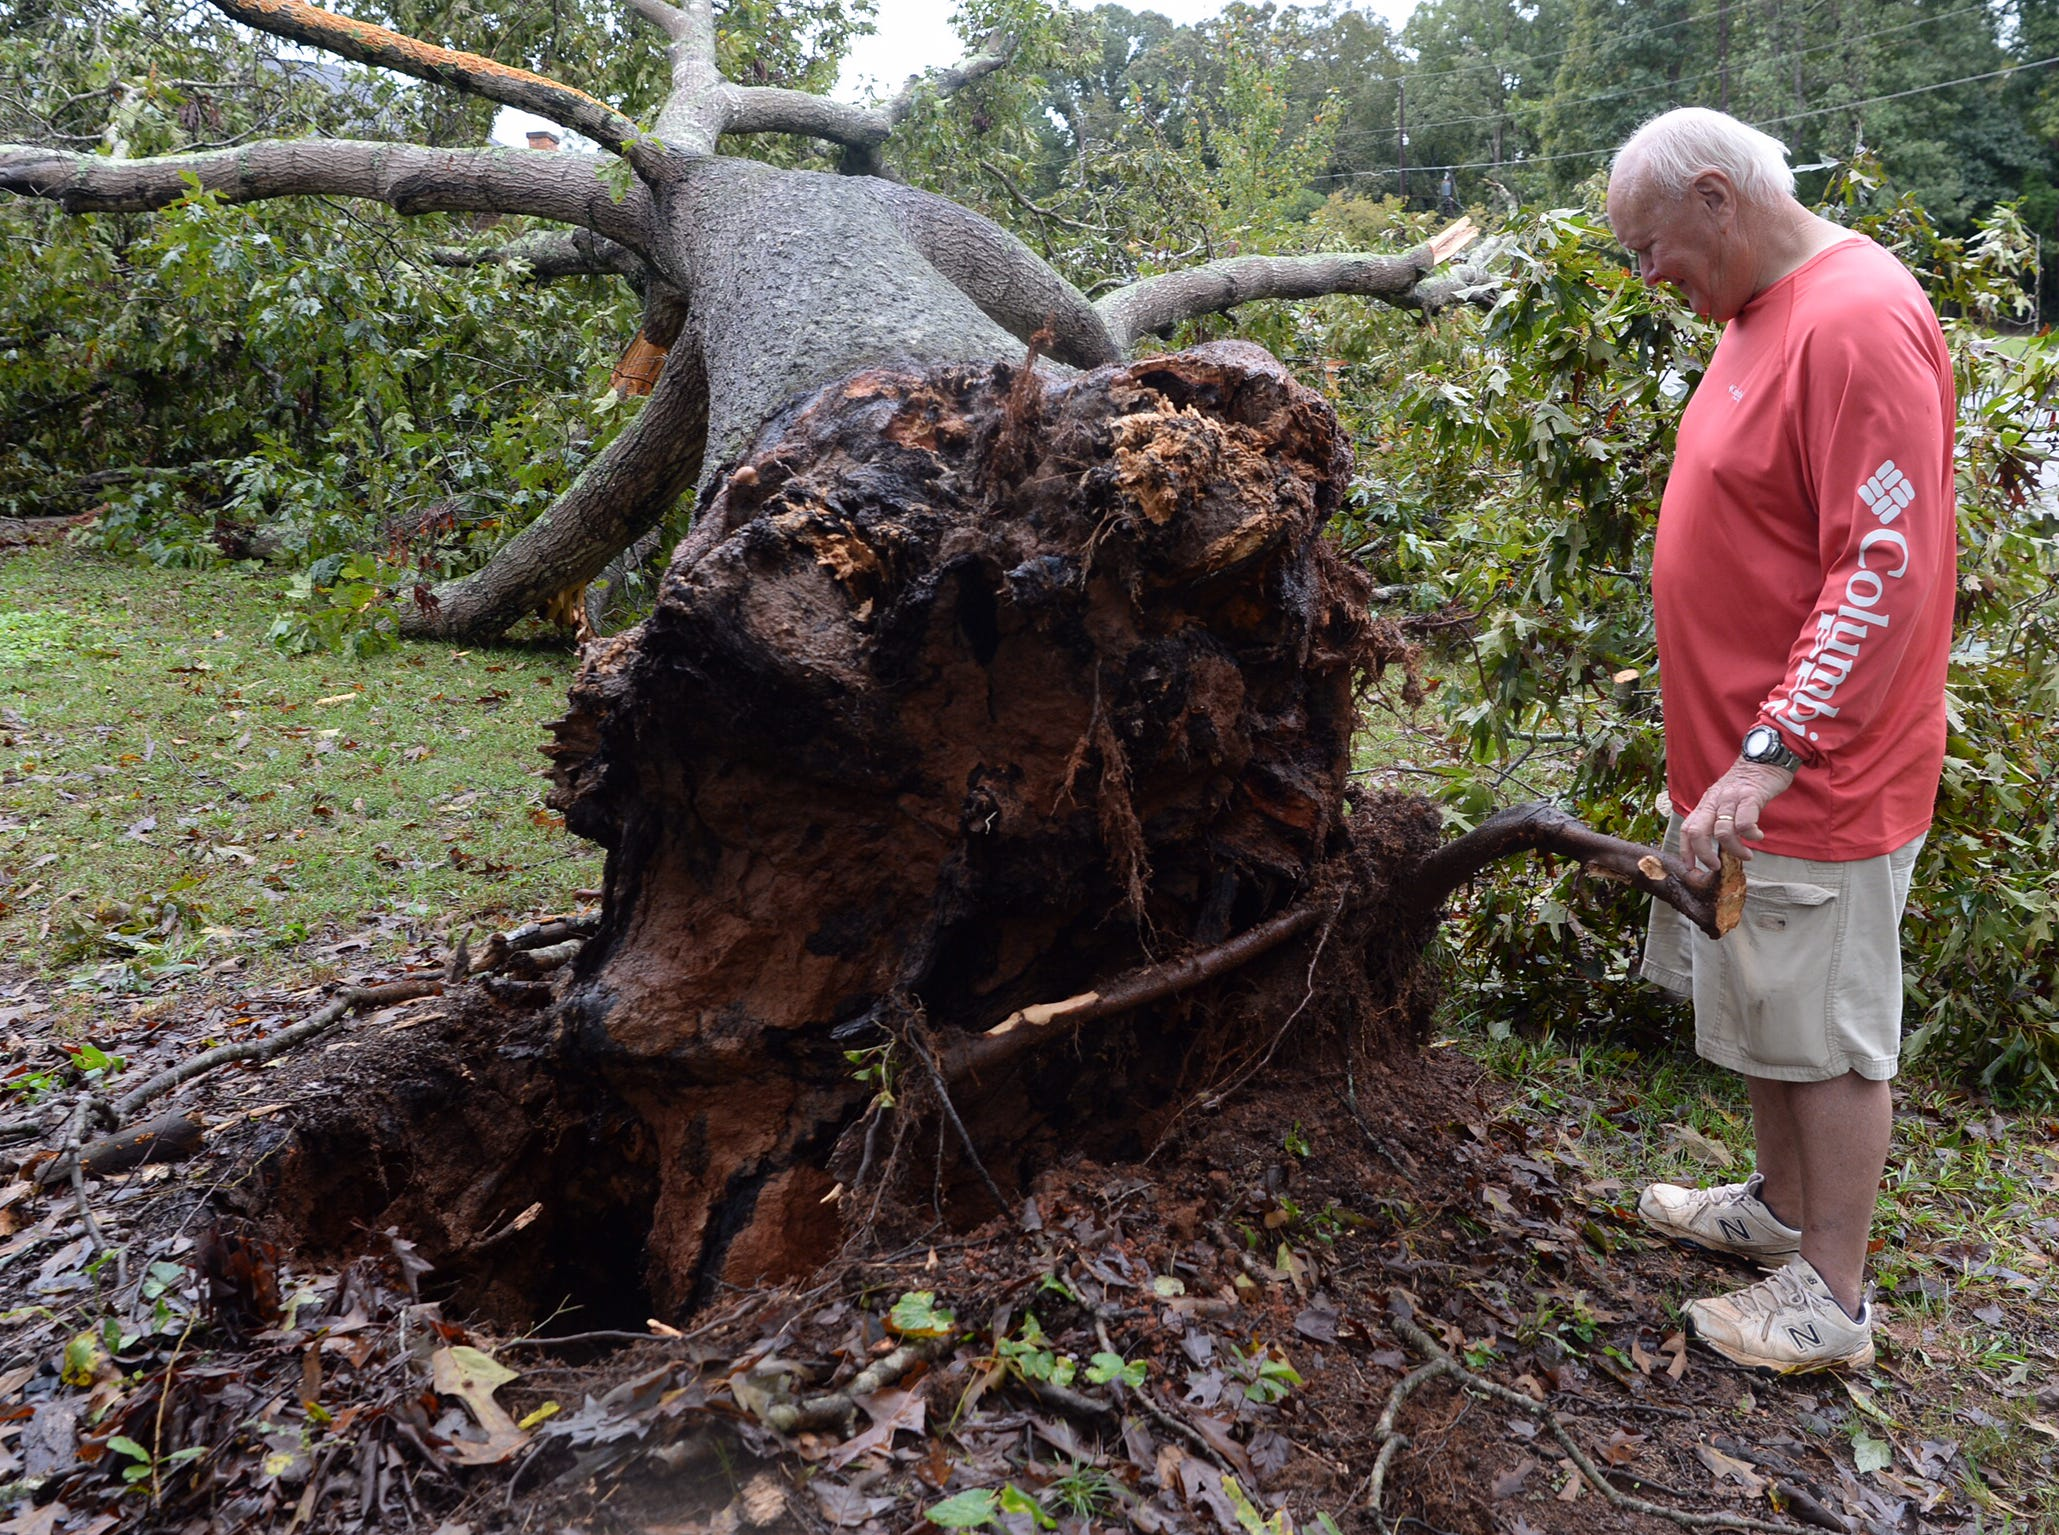 Adam Browning, of 702 Timberlake Road in Anderson, has twin 2-year-old sons, but fortunately it didn't hit their room but still  was close as the oak tree brushed the house. Here, Adam's father Ray Browning looks at tree.